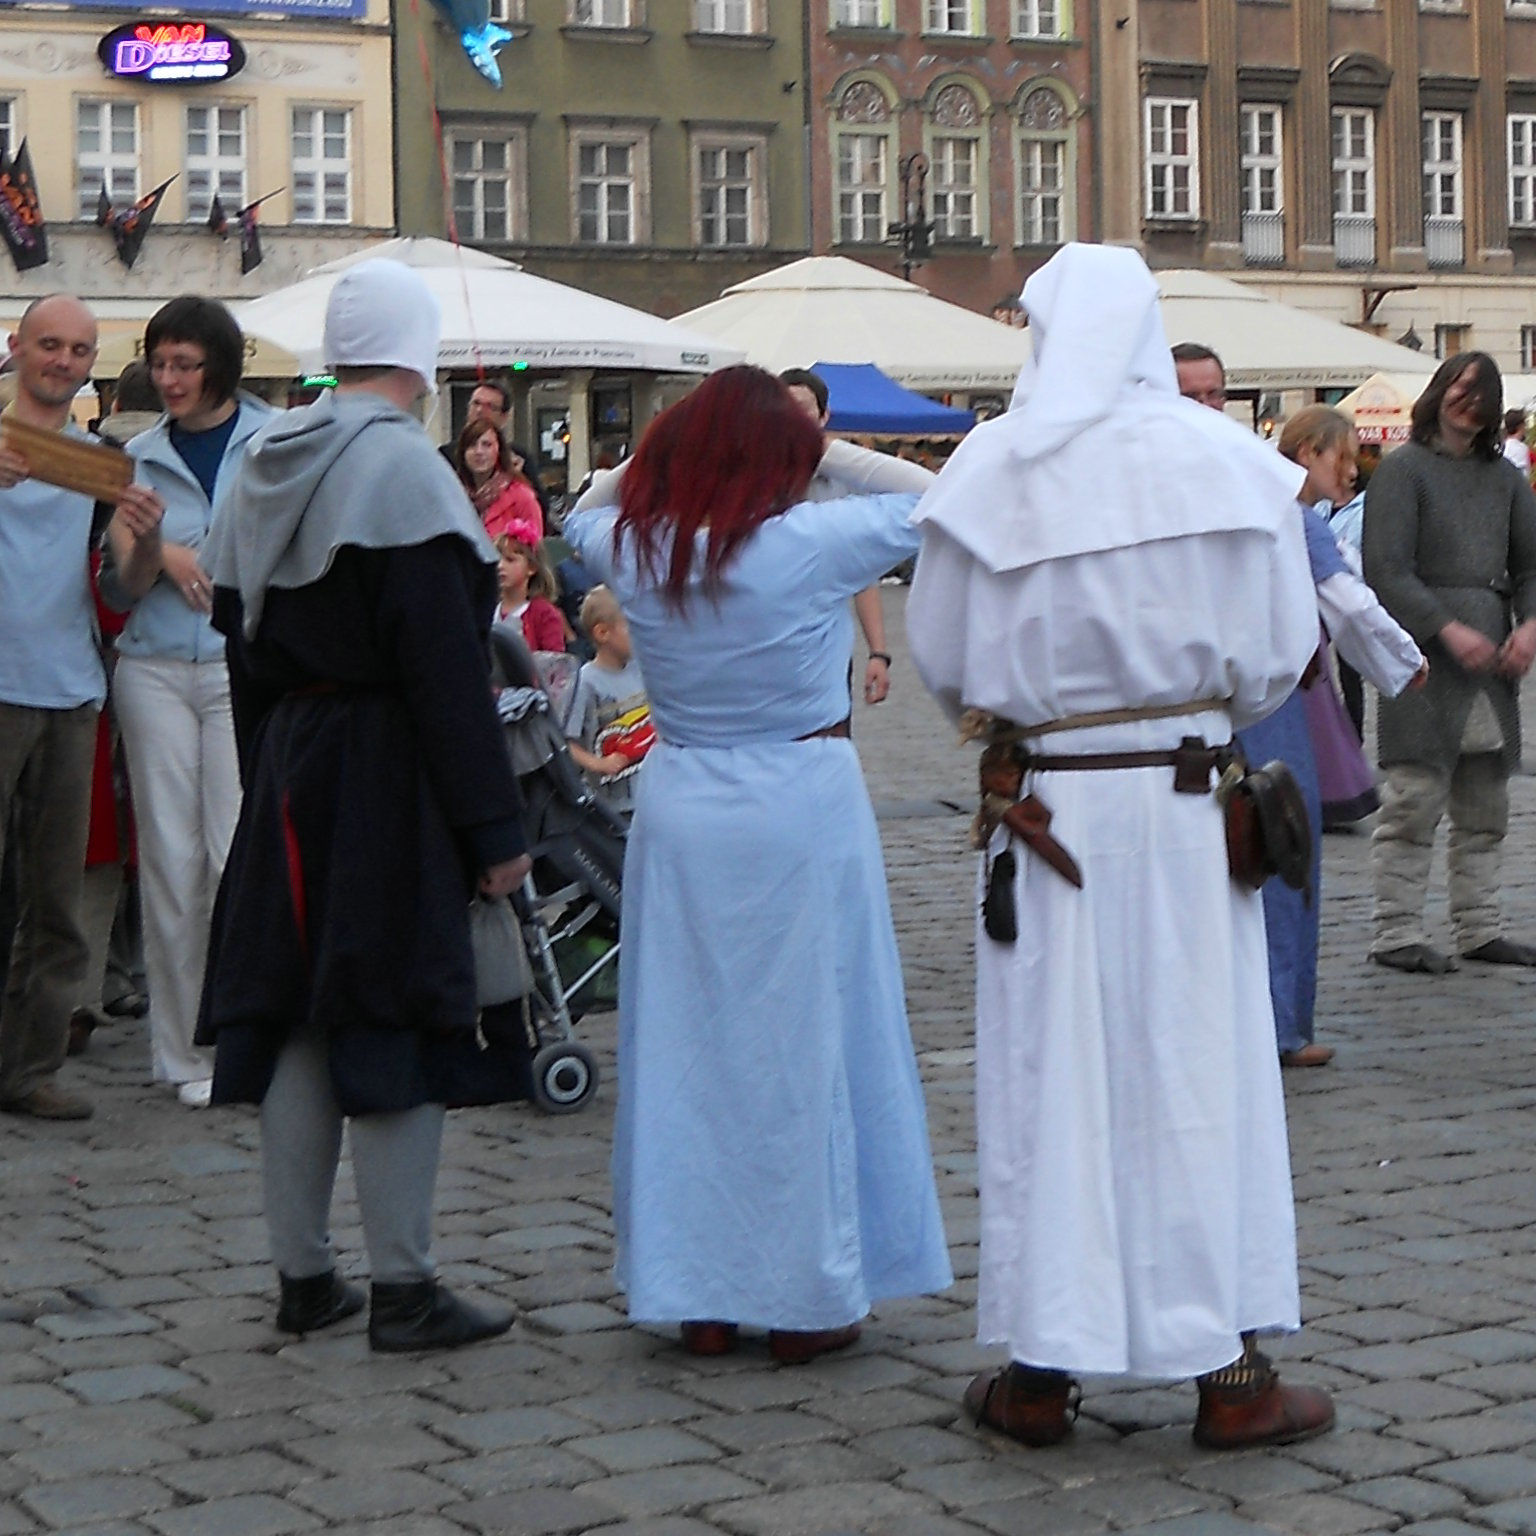 Their Old Style of Dress (Middle Ages fashion in Poznan)